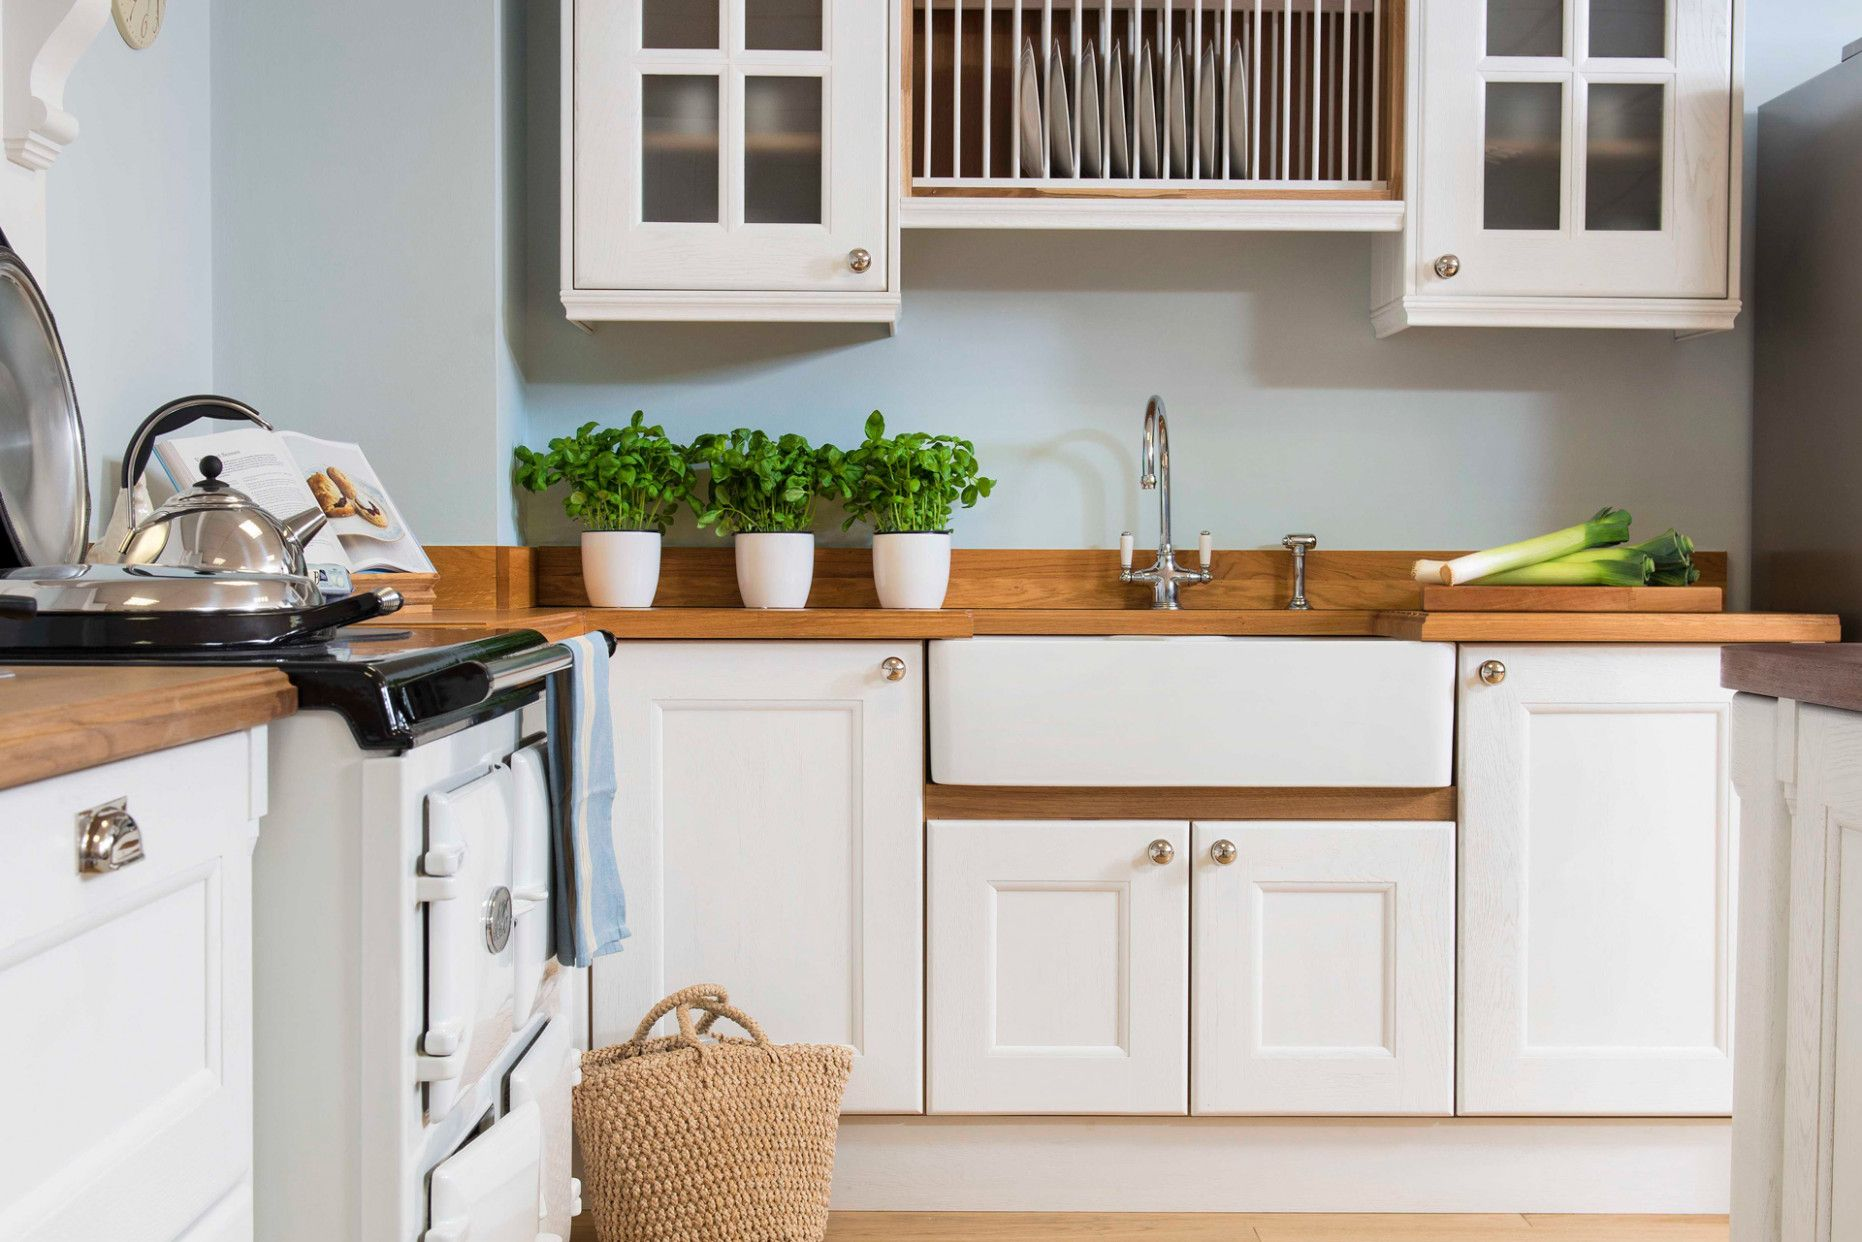 19 The Best Small Kitchen For Sale di 2020